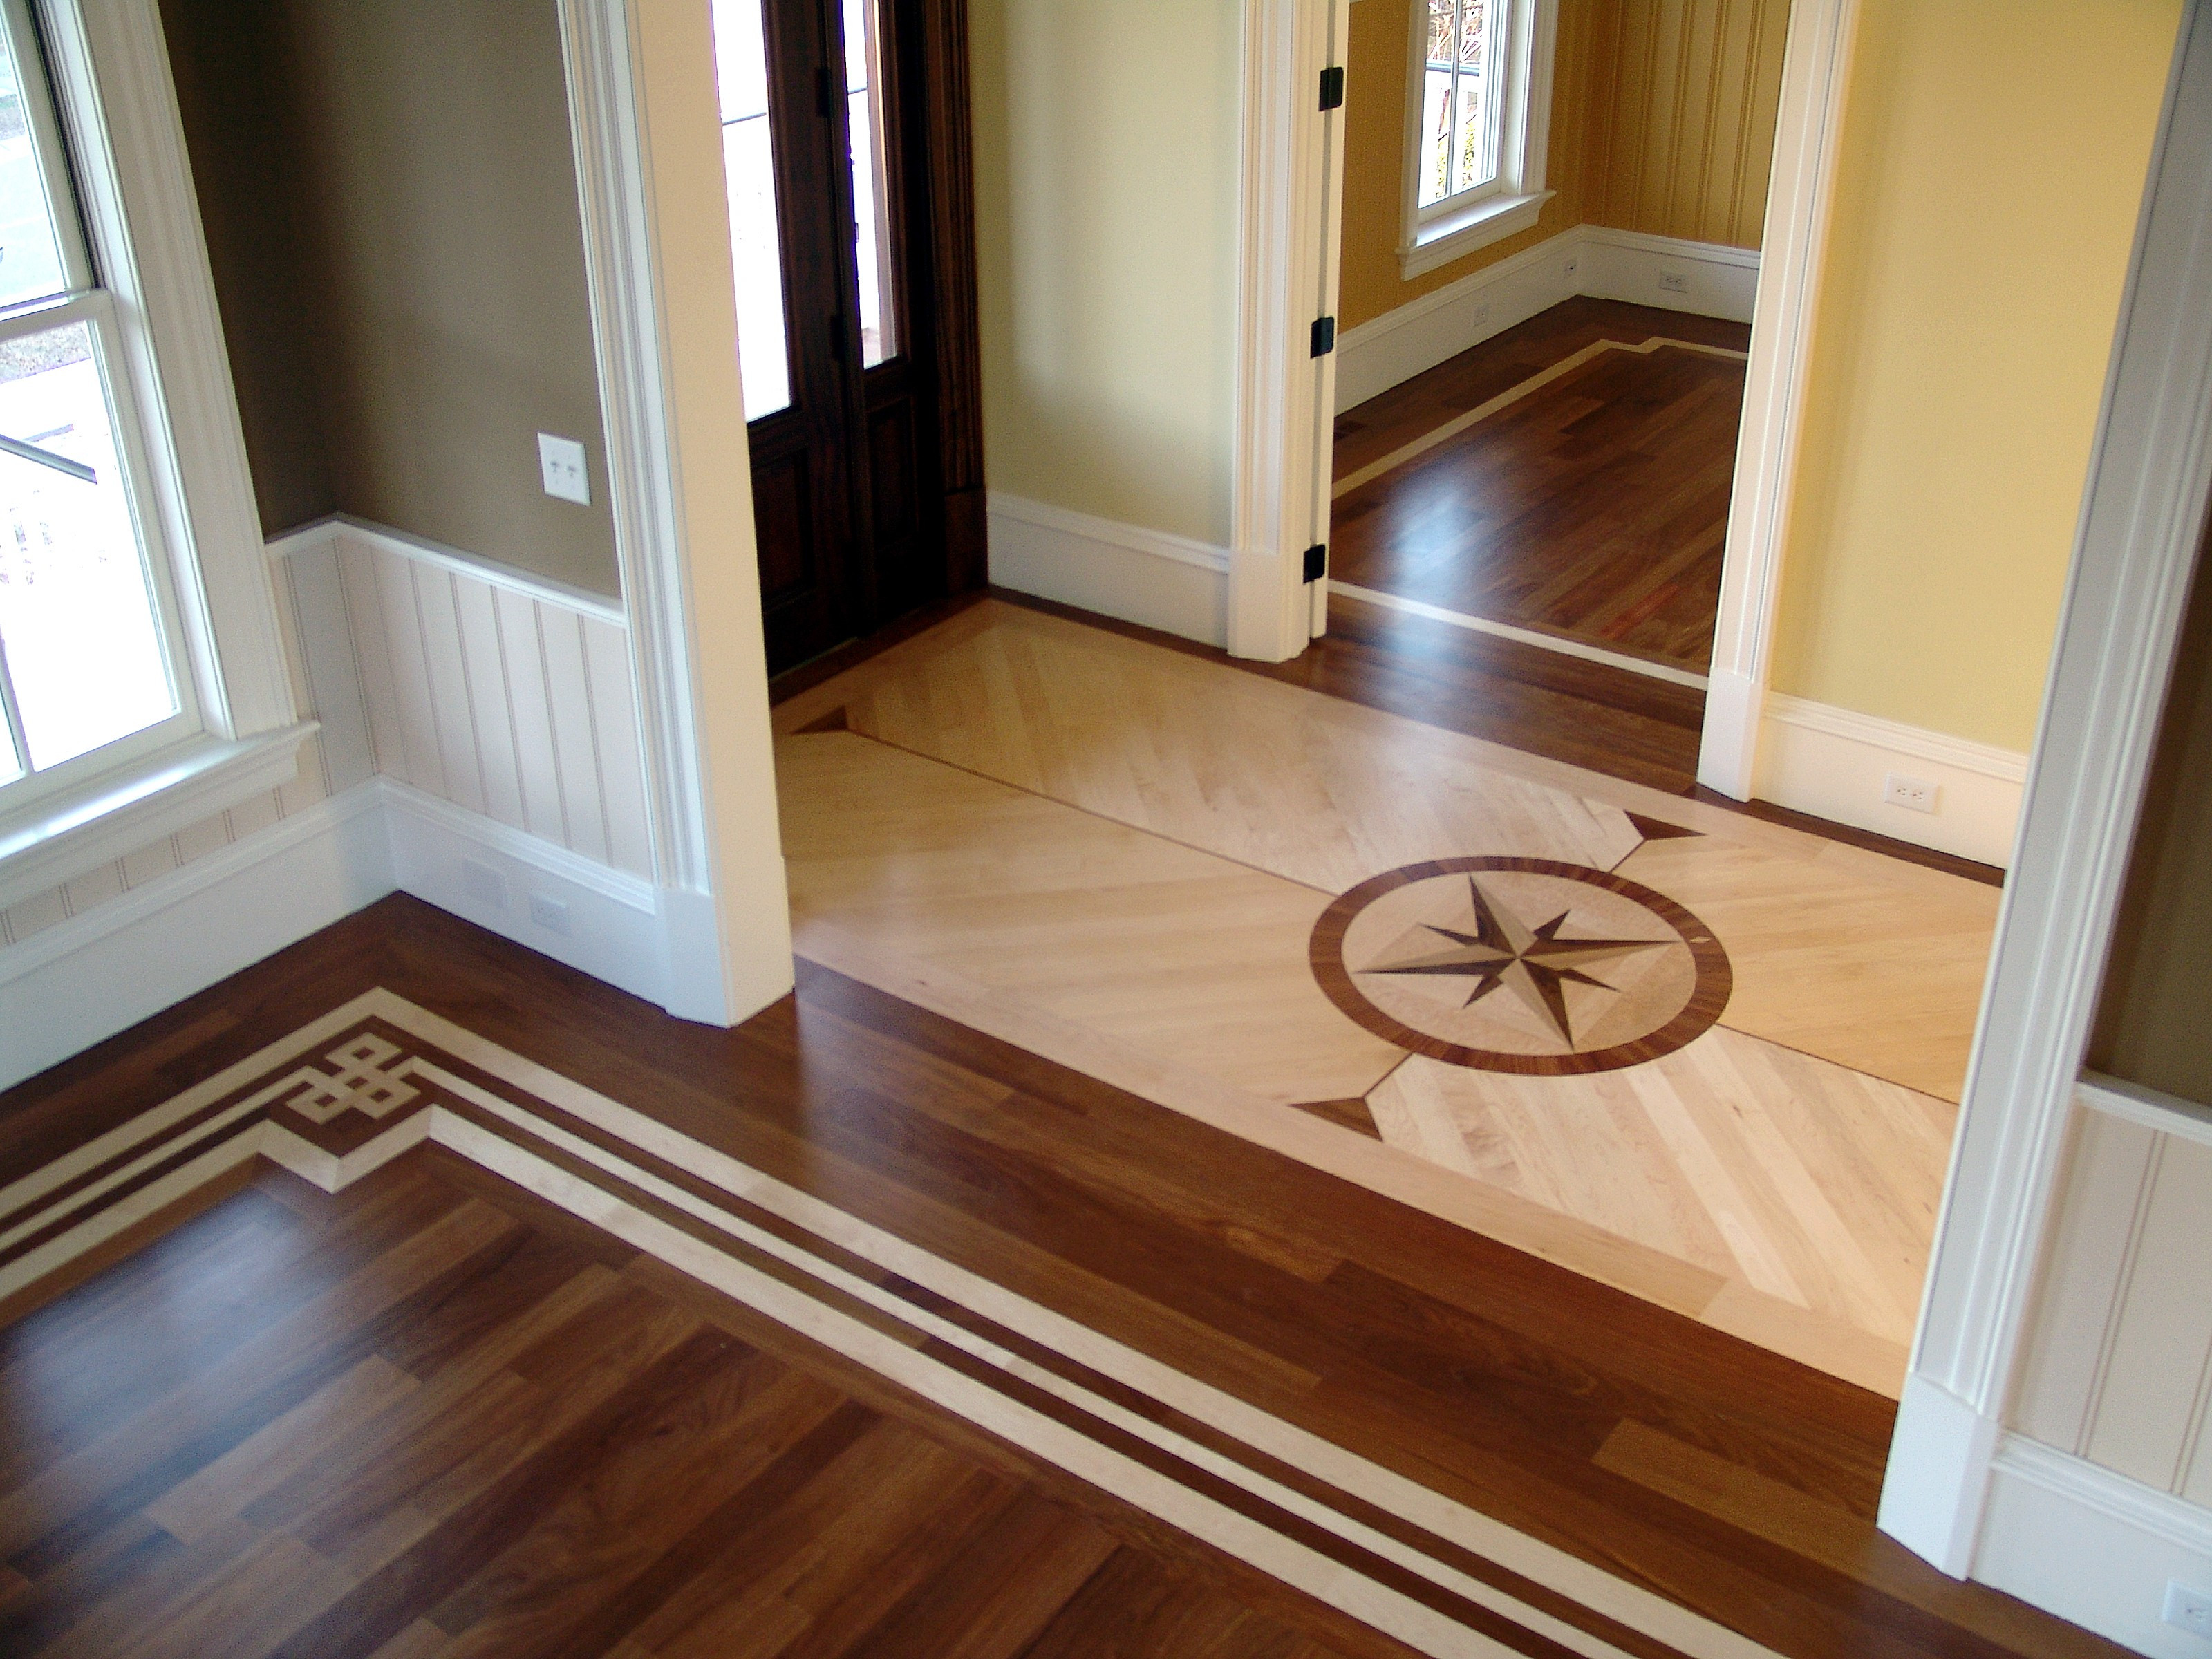 hardwood floor refinishing products of imperial wood floors madison wi hardwood floors hardwood floor within home a